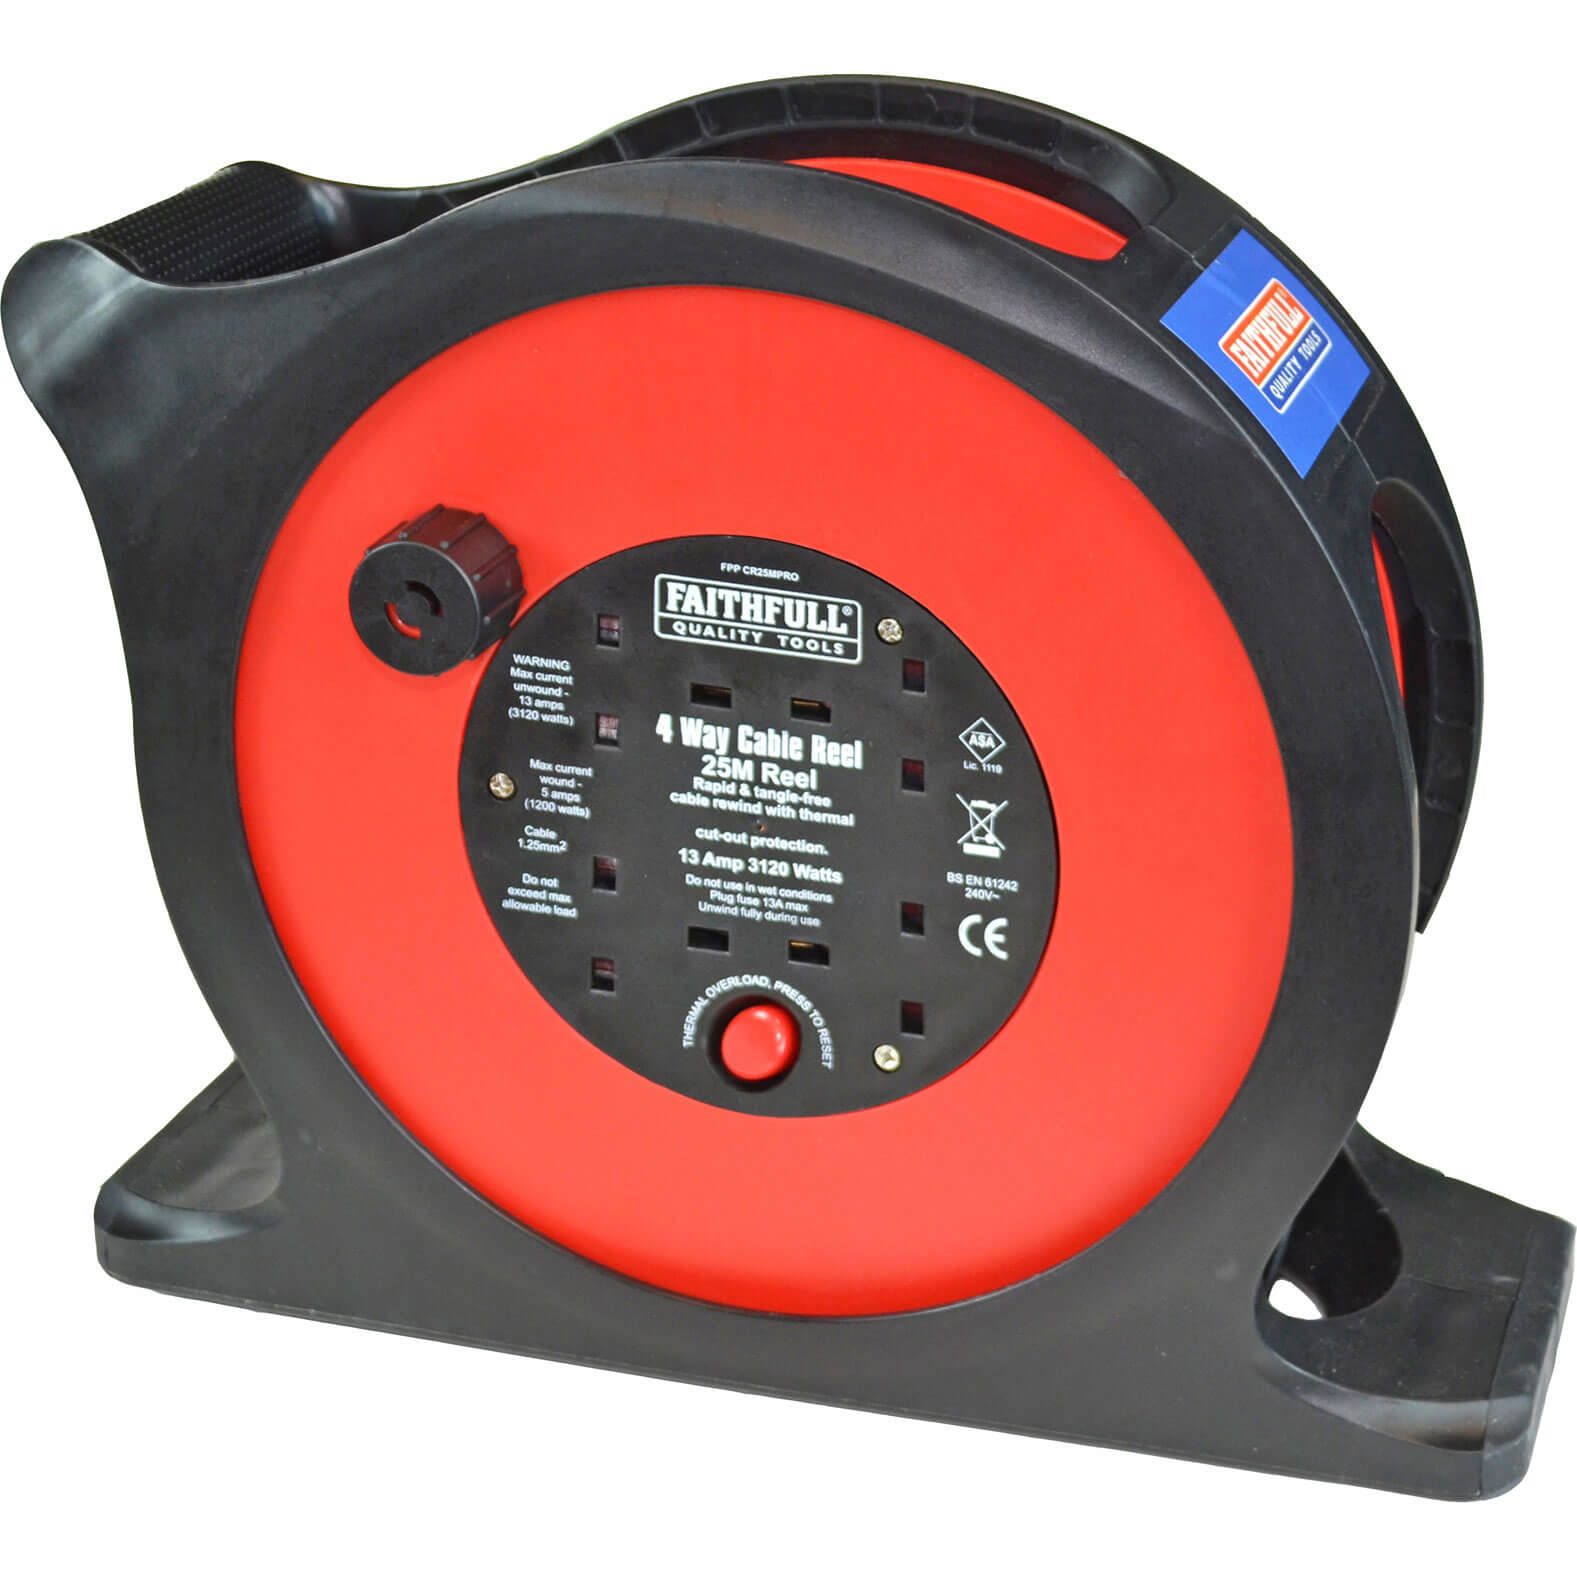 Faithfull 4 Socket Anti Tangle Cable Reel 25m 13amp 240v